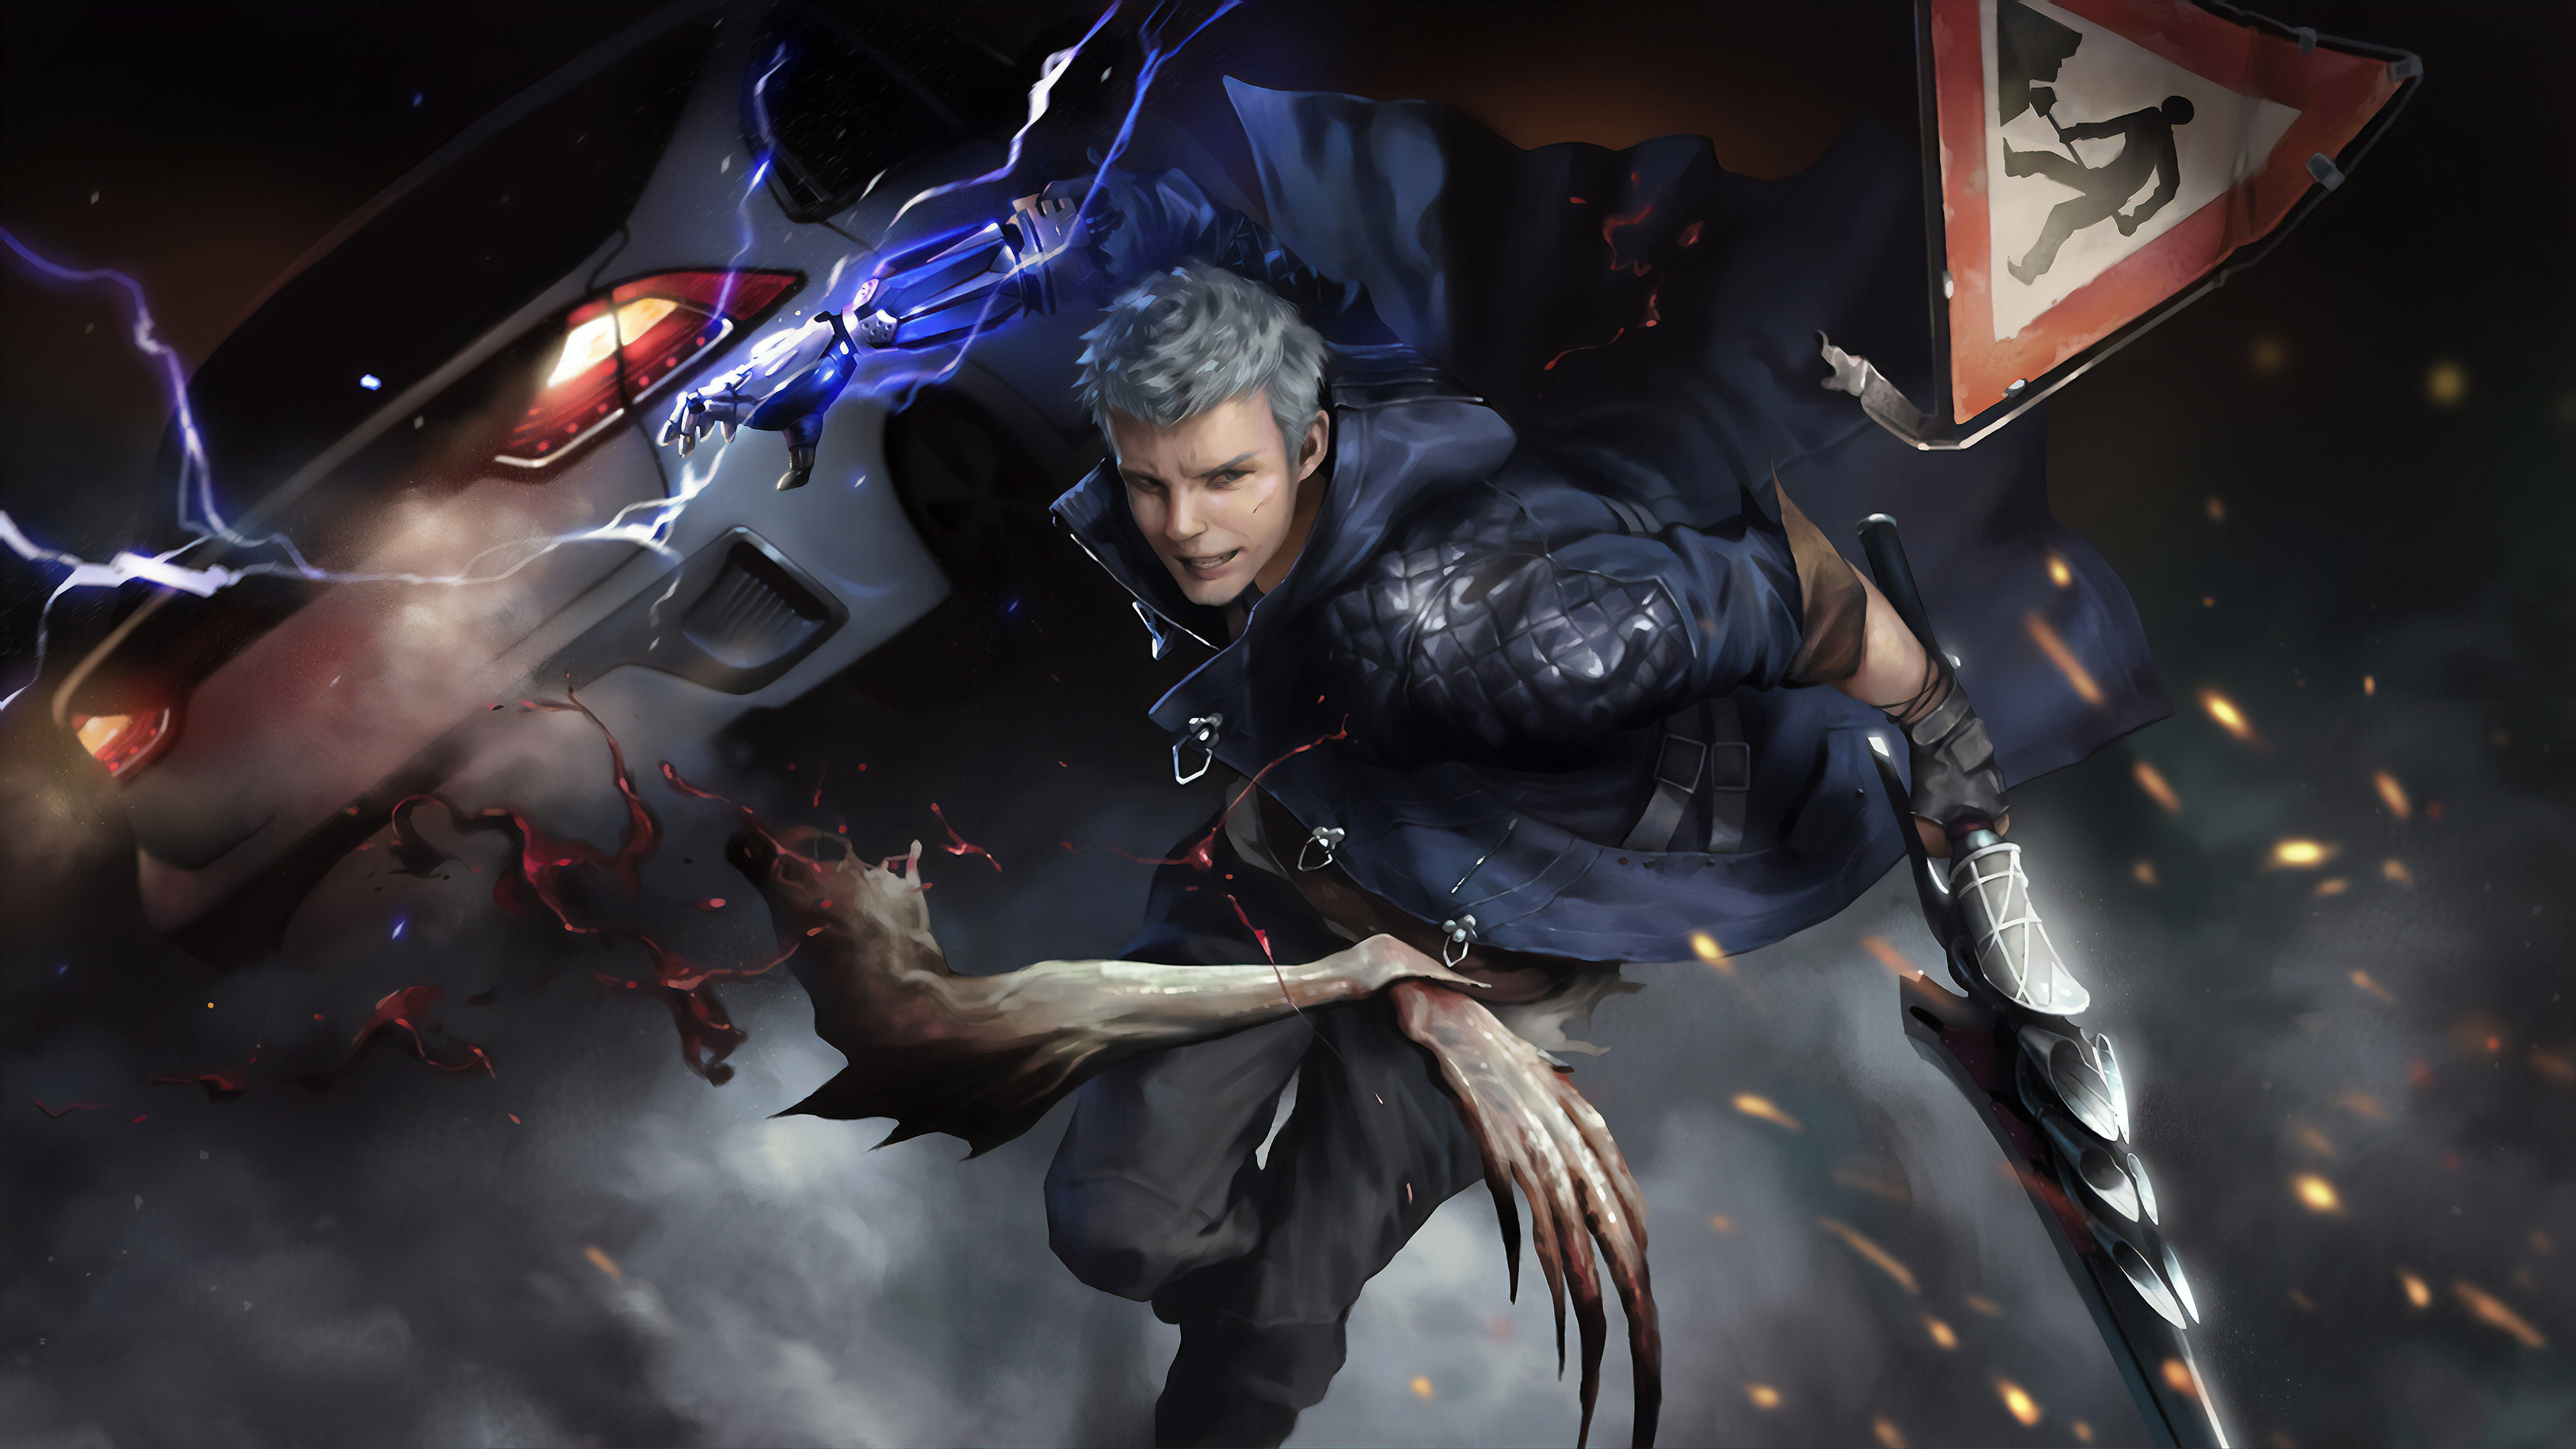 1400x900 Nero In Devil May Cry 5 4k Art 1400x900 Resolution